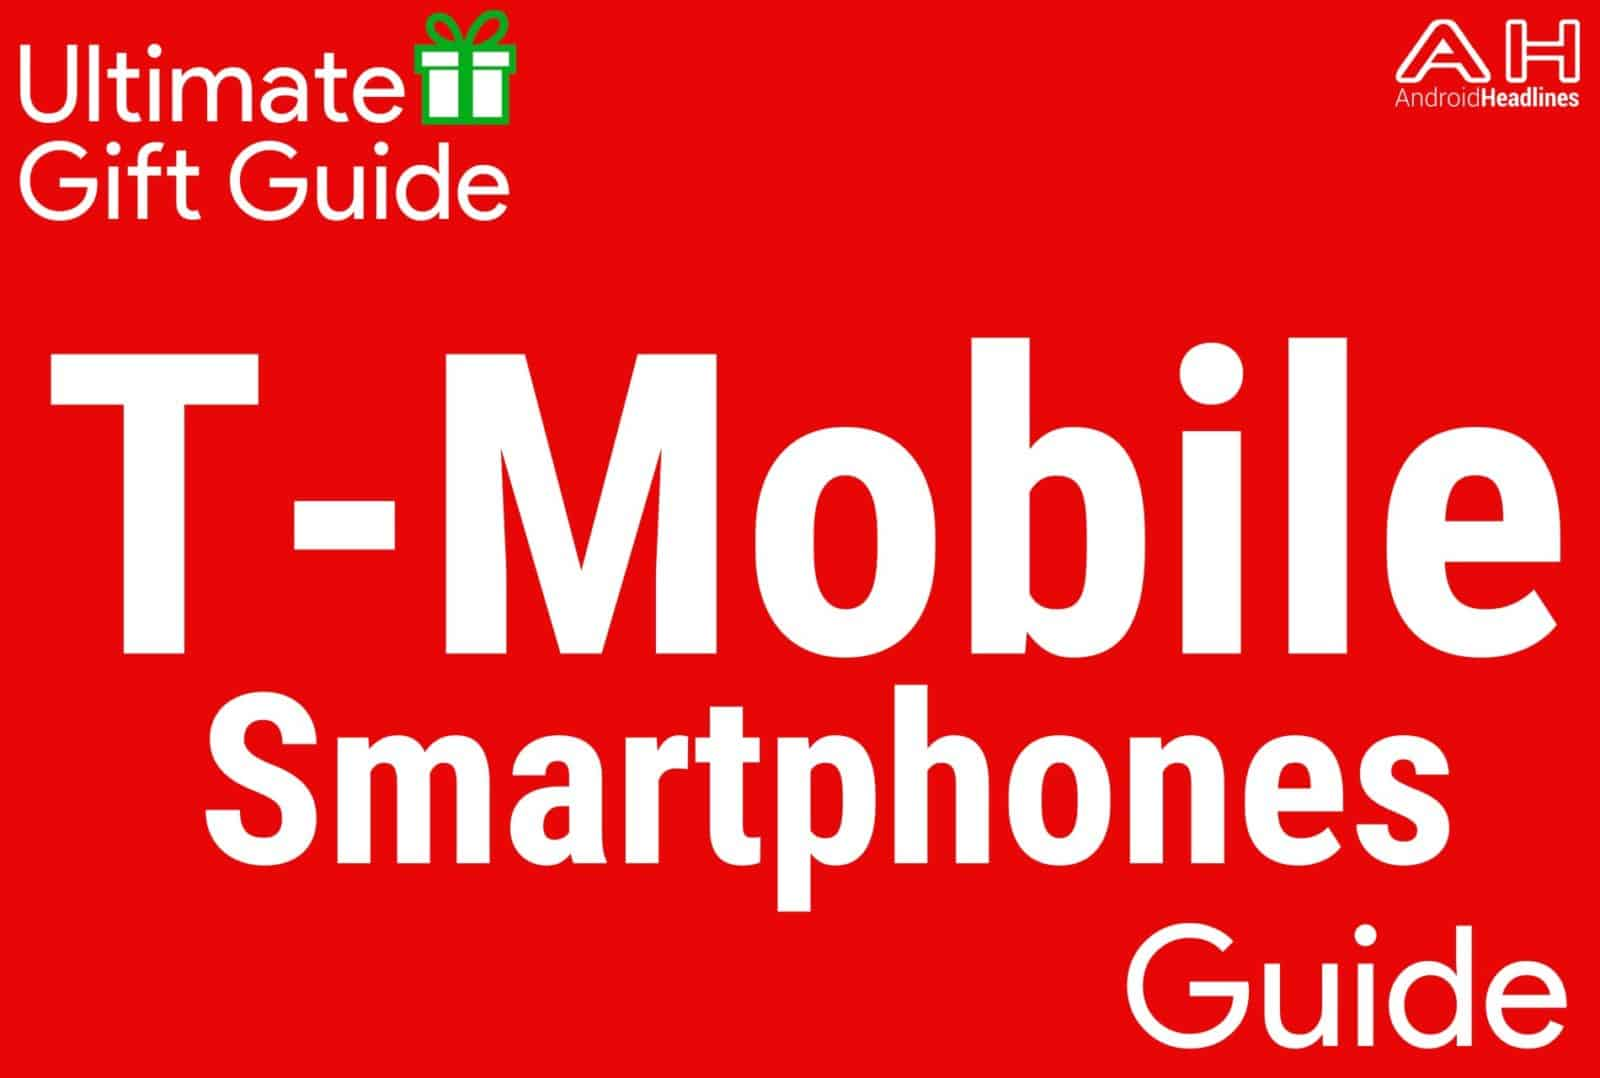 T-Mobile Smartphones - Gift Guide 2015